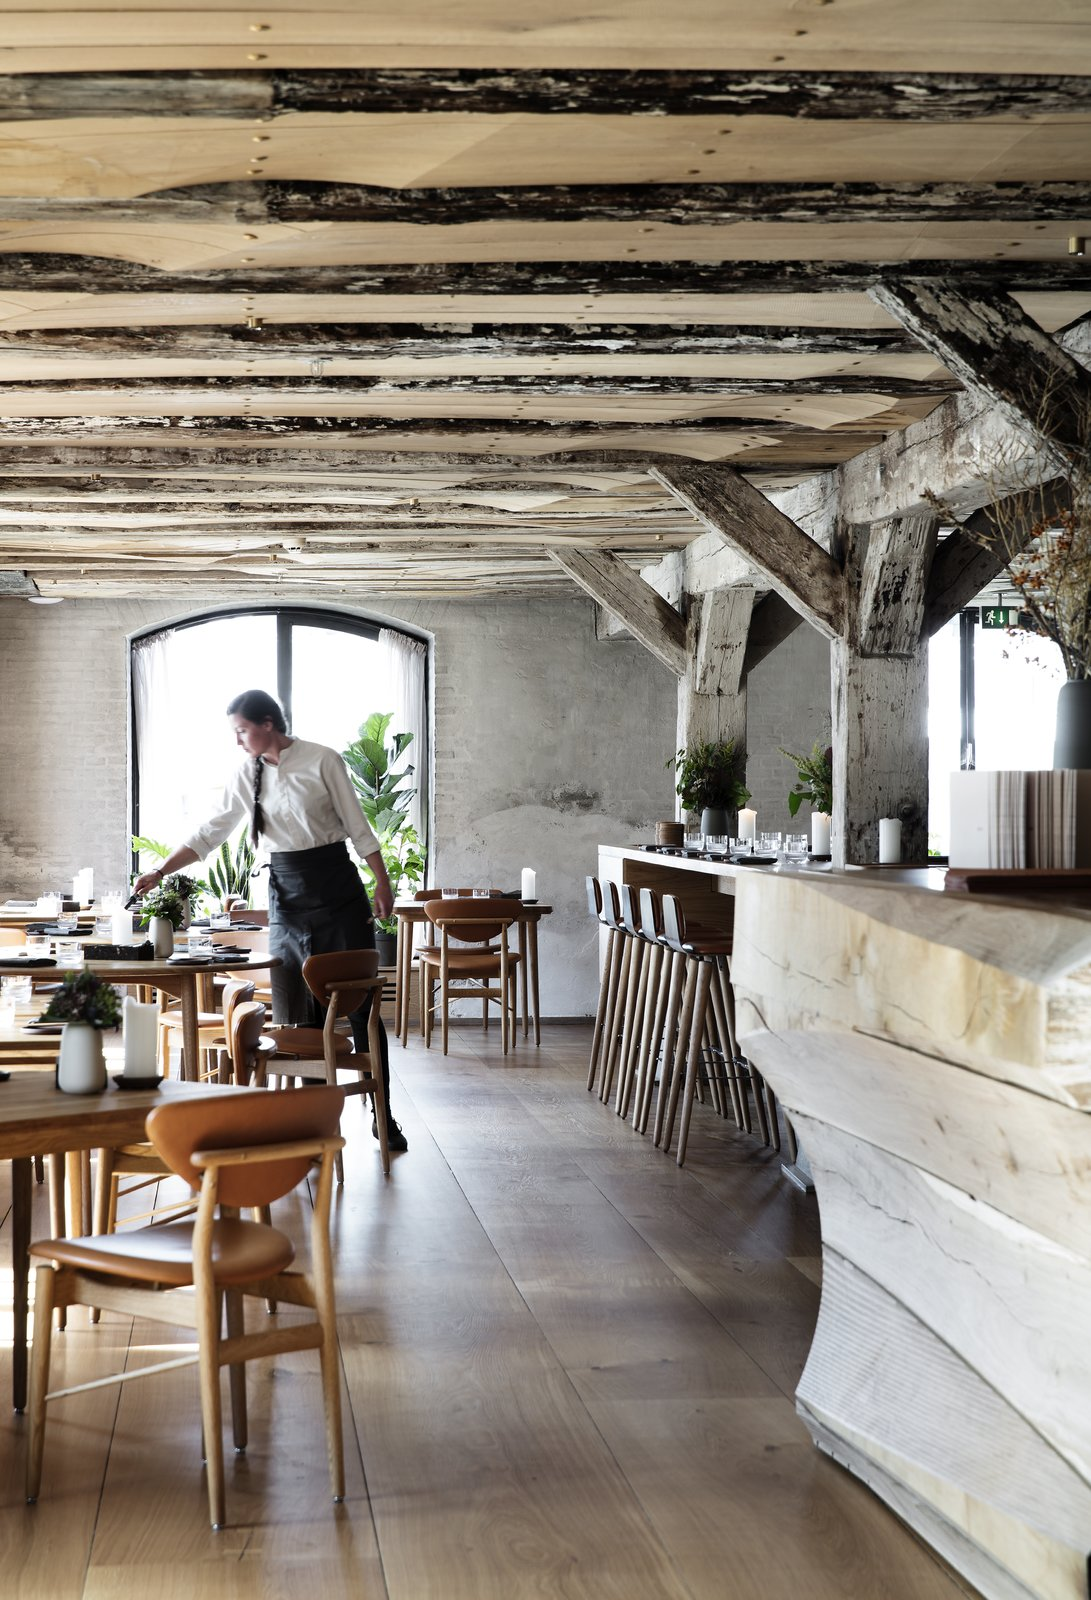 Upon entering the restaurant, guests are met with a warm oak floor, which is in contrast to the rough texture of the original stone walls.